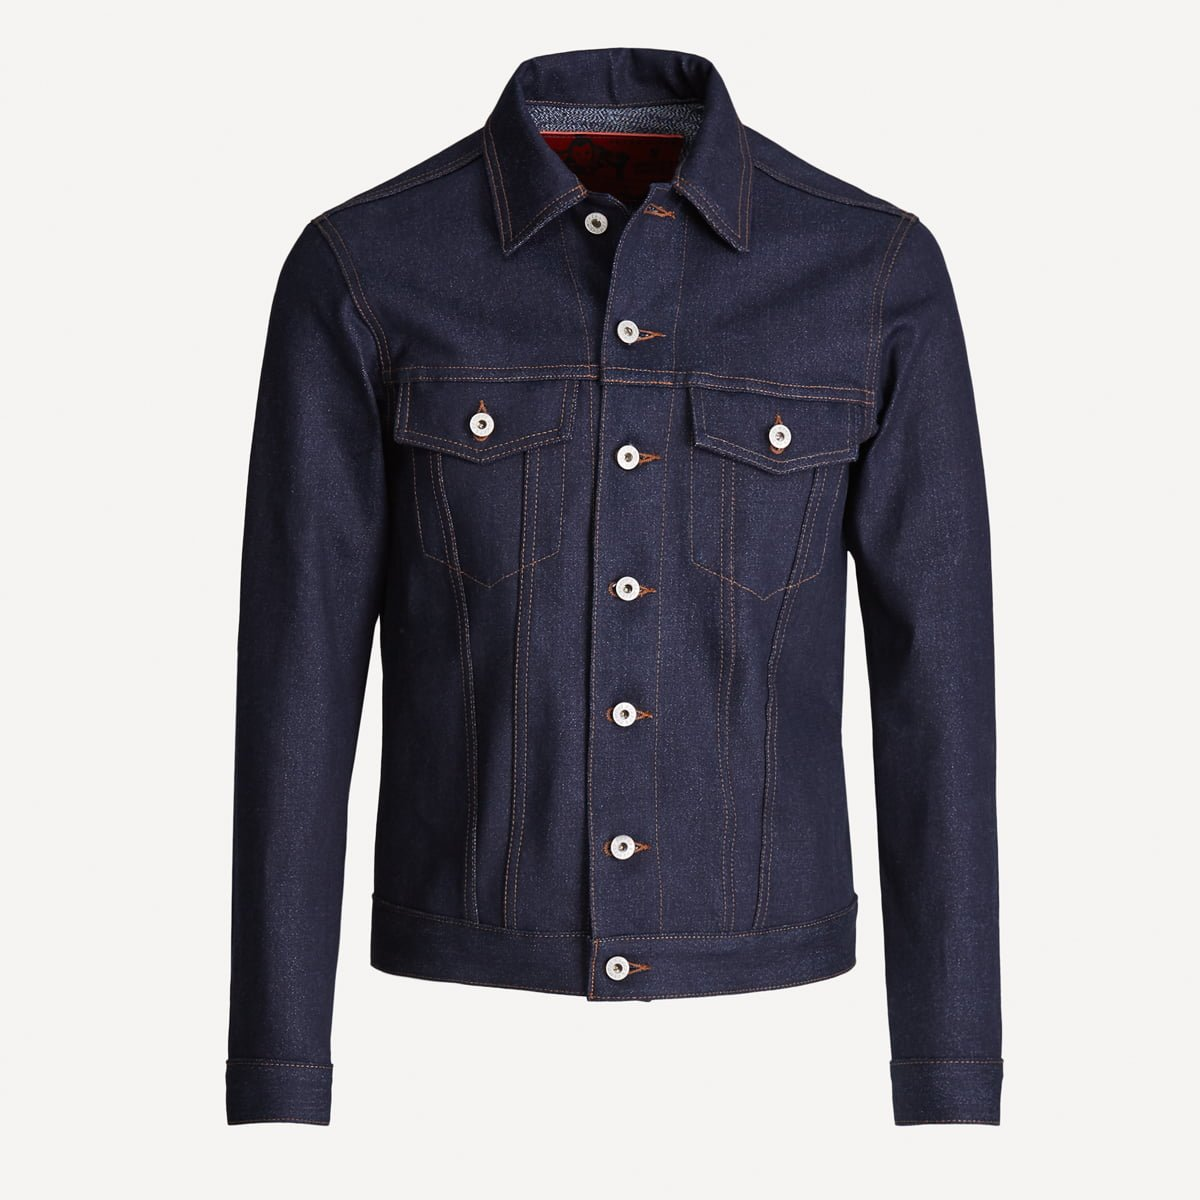 Naked & Famous x Frank & Oak Selvedge Denim Jacket in Indigo